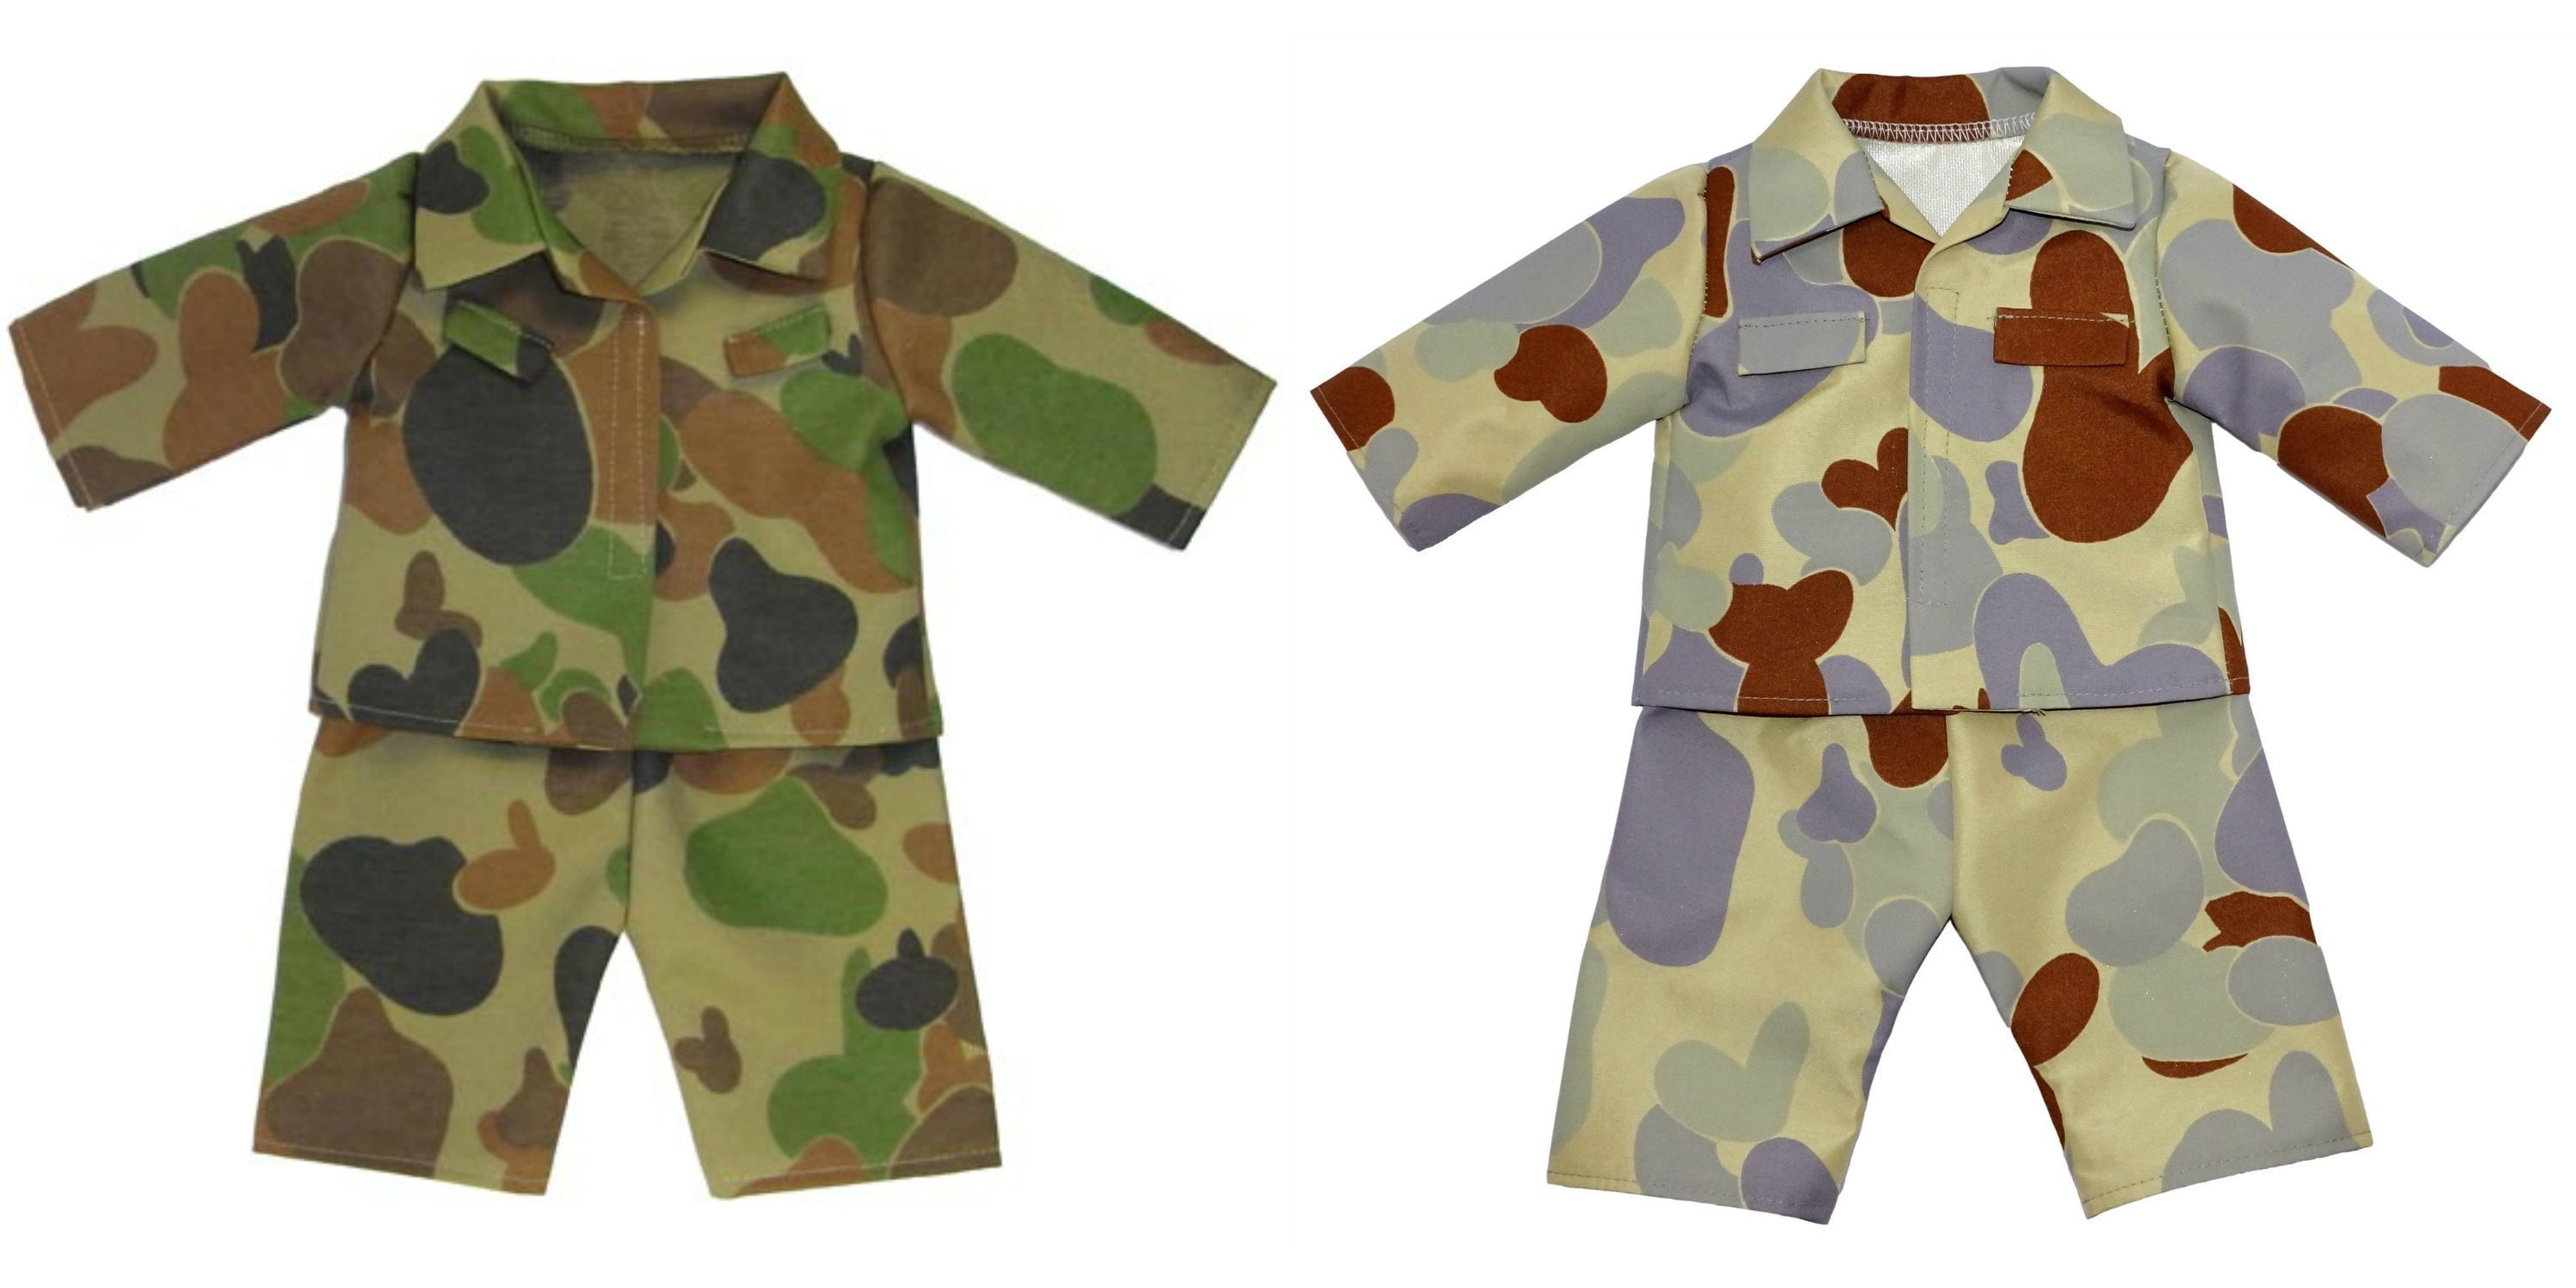 Army Uniform #boydollsincamo Both boy & girl dolls can now be part of the Australian Army too in this great camouflage print uniform! Pants have elastic waist and top fastens at the front with a Velcro strip.  * Boots shown on Baby Born are sold separately under 'Shoes & Socks'.  ** Available in Desert Print or Camo Print. #boydollsincamo Army Uniform #boydollsincamo Both boy & girl dolls can now be part of the Australian Army too in this great camouflage print uniform! Pants have elastic waist #boydollsincamo